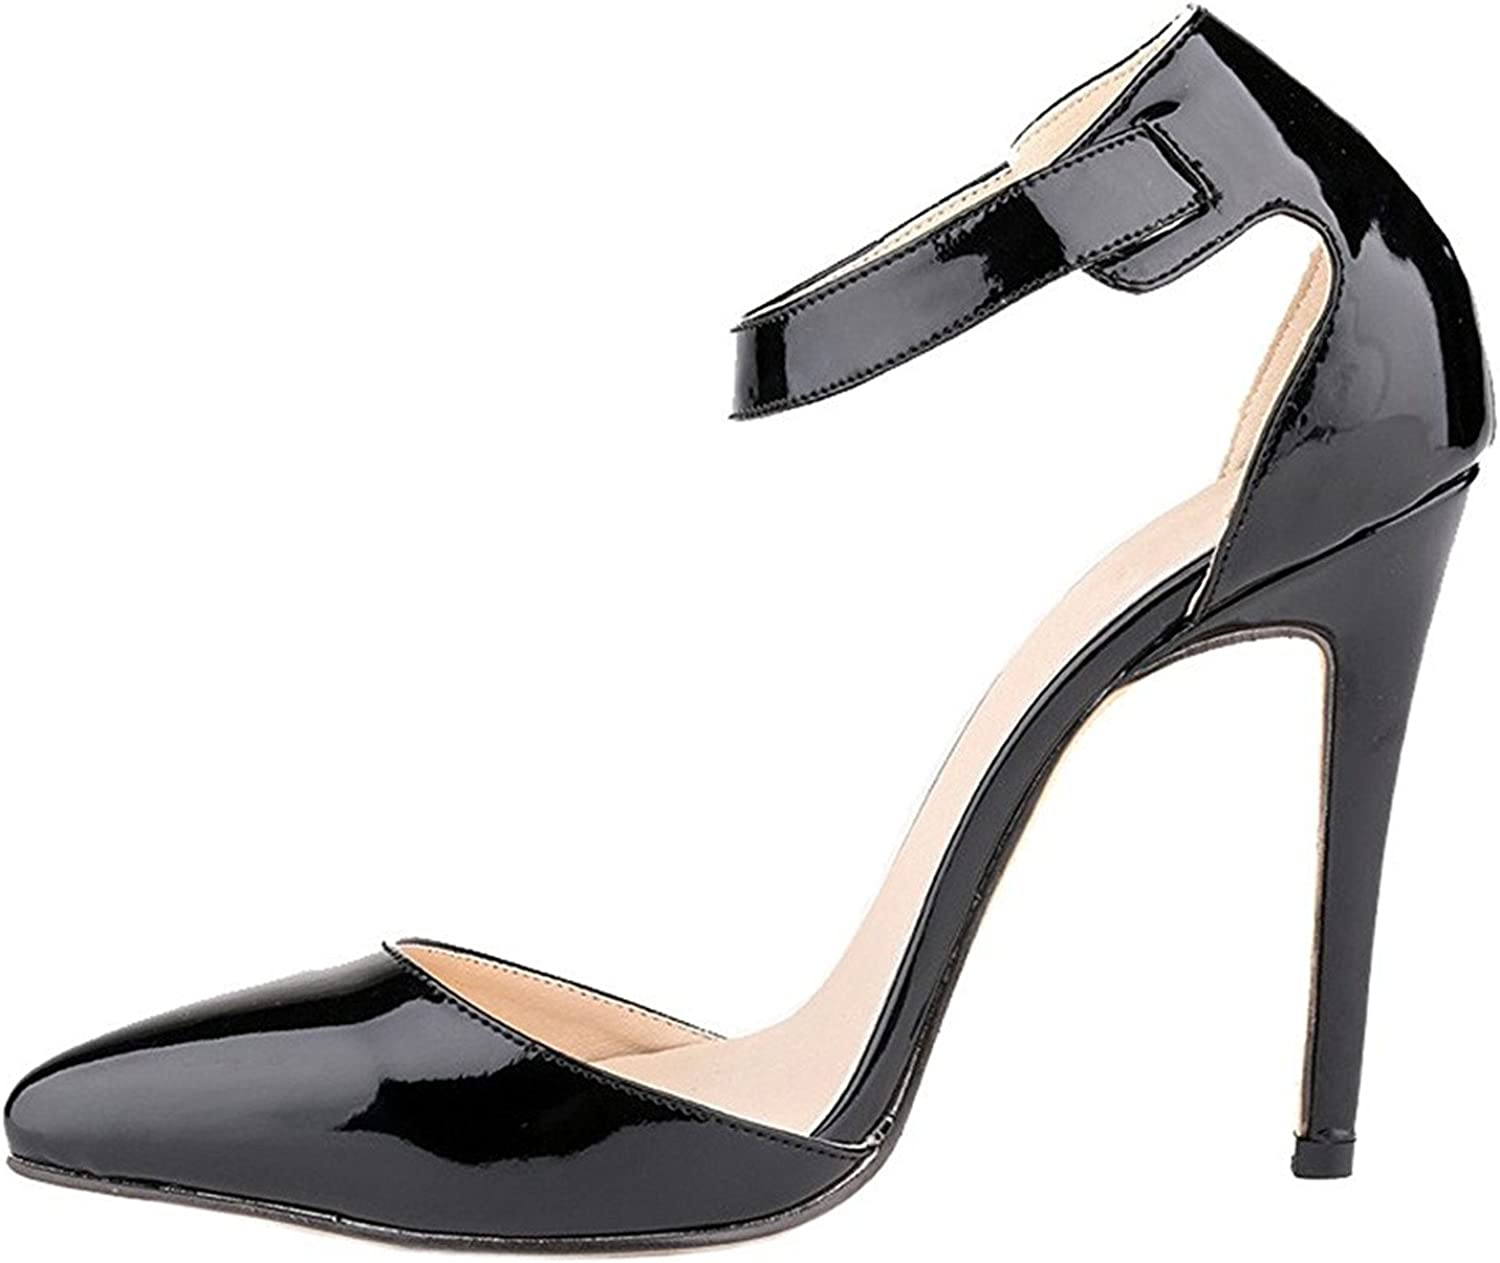 Also Easy Stylish Women's Sexy Buckle Pointed-Toe Stiletto Hihg Heel Pump shoes Unique Style